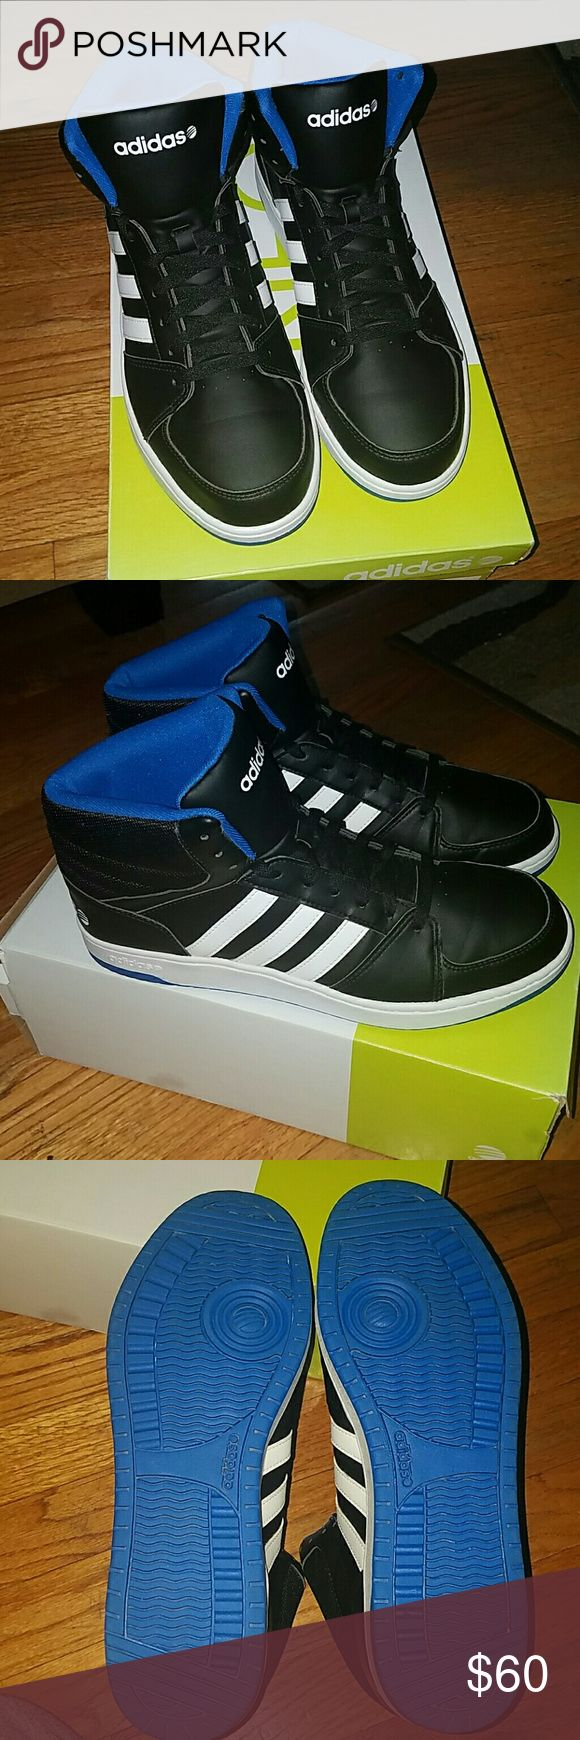 Men's New Adidas New Adidas Neo men's shoes. Just tried on didn't fit. High Top. No box. Adidas Shoes Sneakers